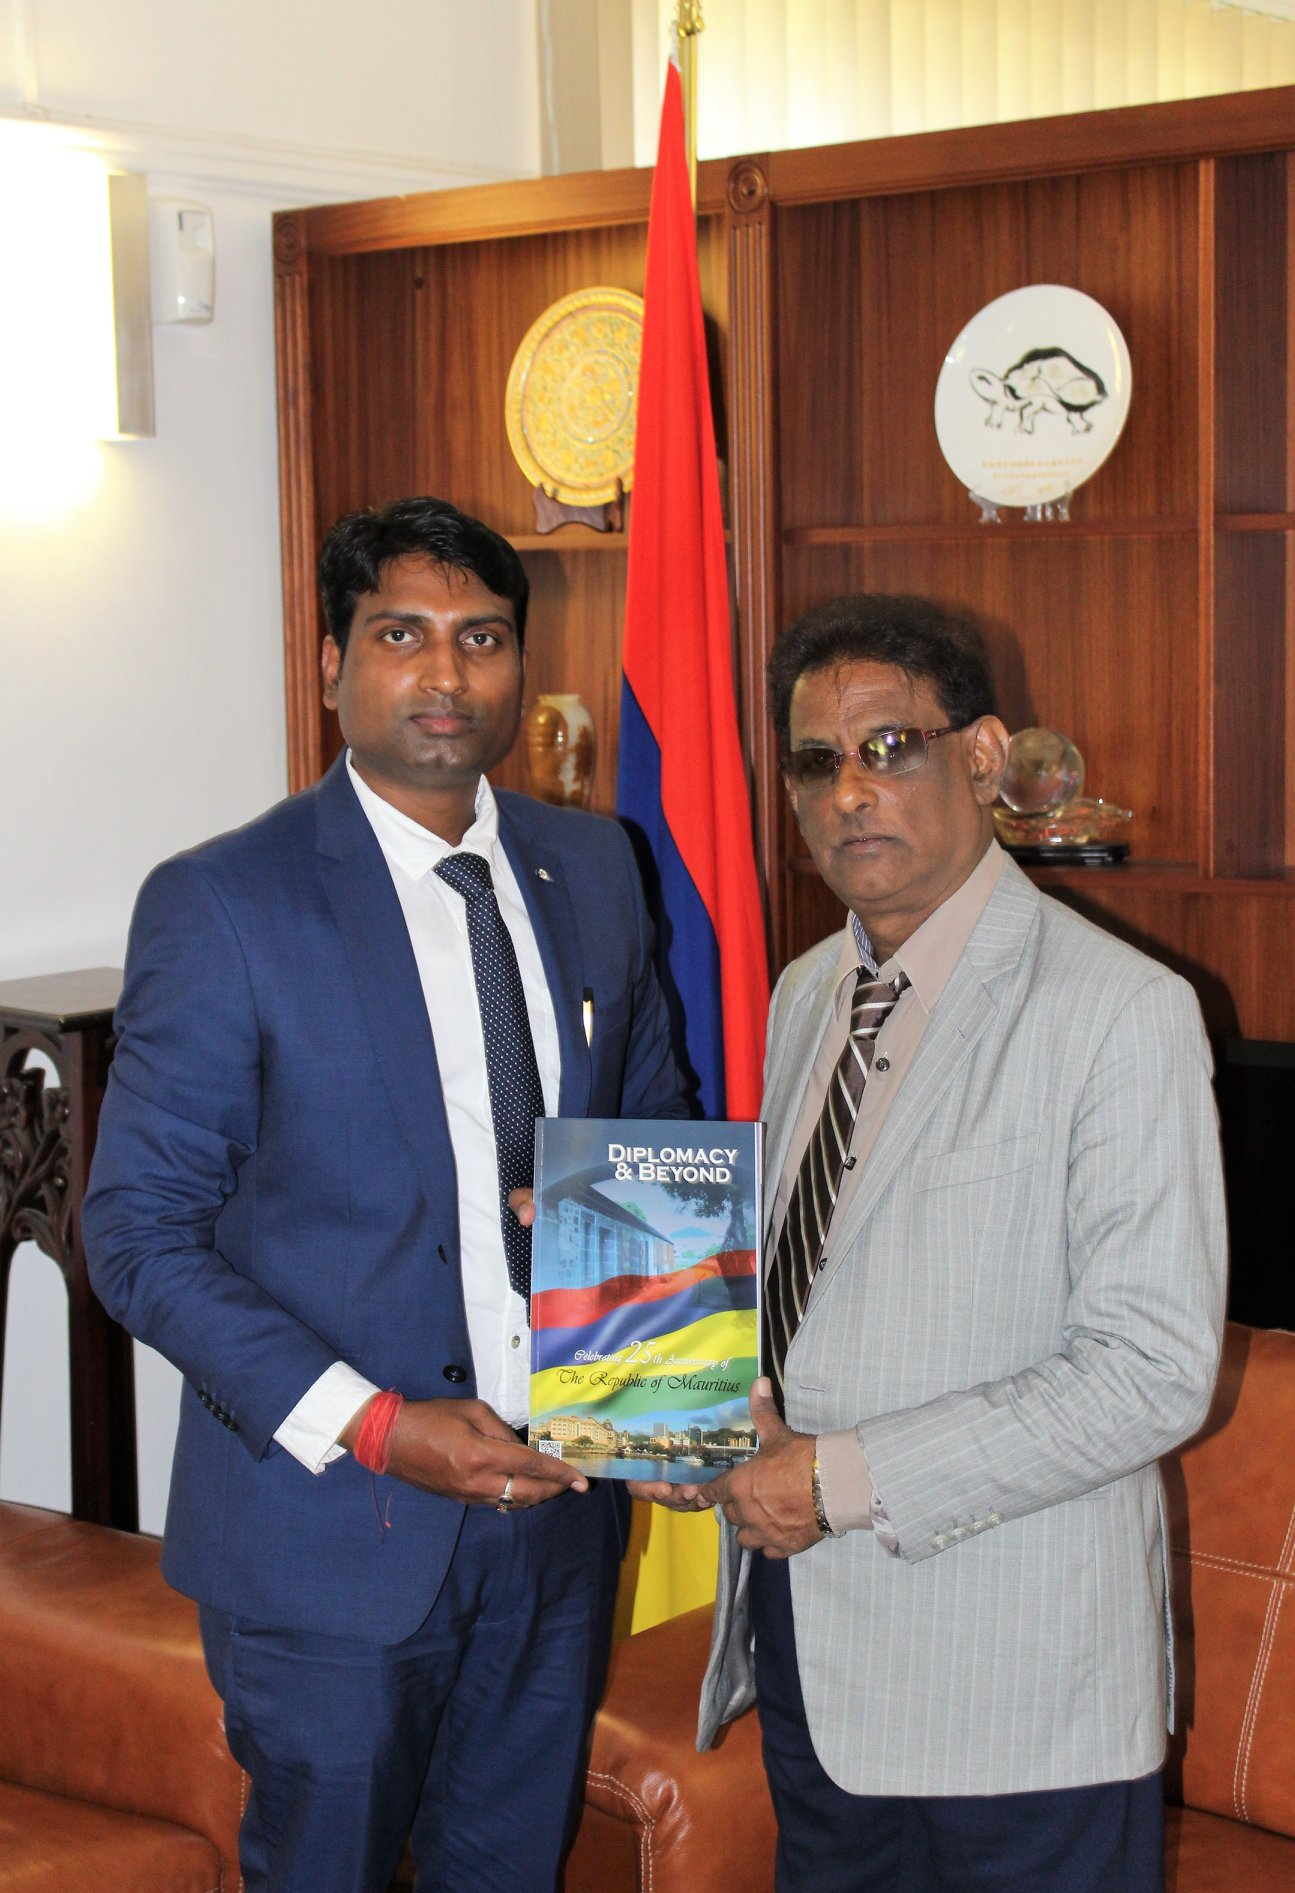 """CEO & Publisher of Diplomacy & Beyond Plus with the Hon. Vice President of the Republic of Mauritius, H.E. Paramasivum Pillay """"Barlen"""" Vyapoory"""